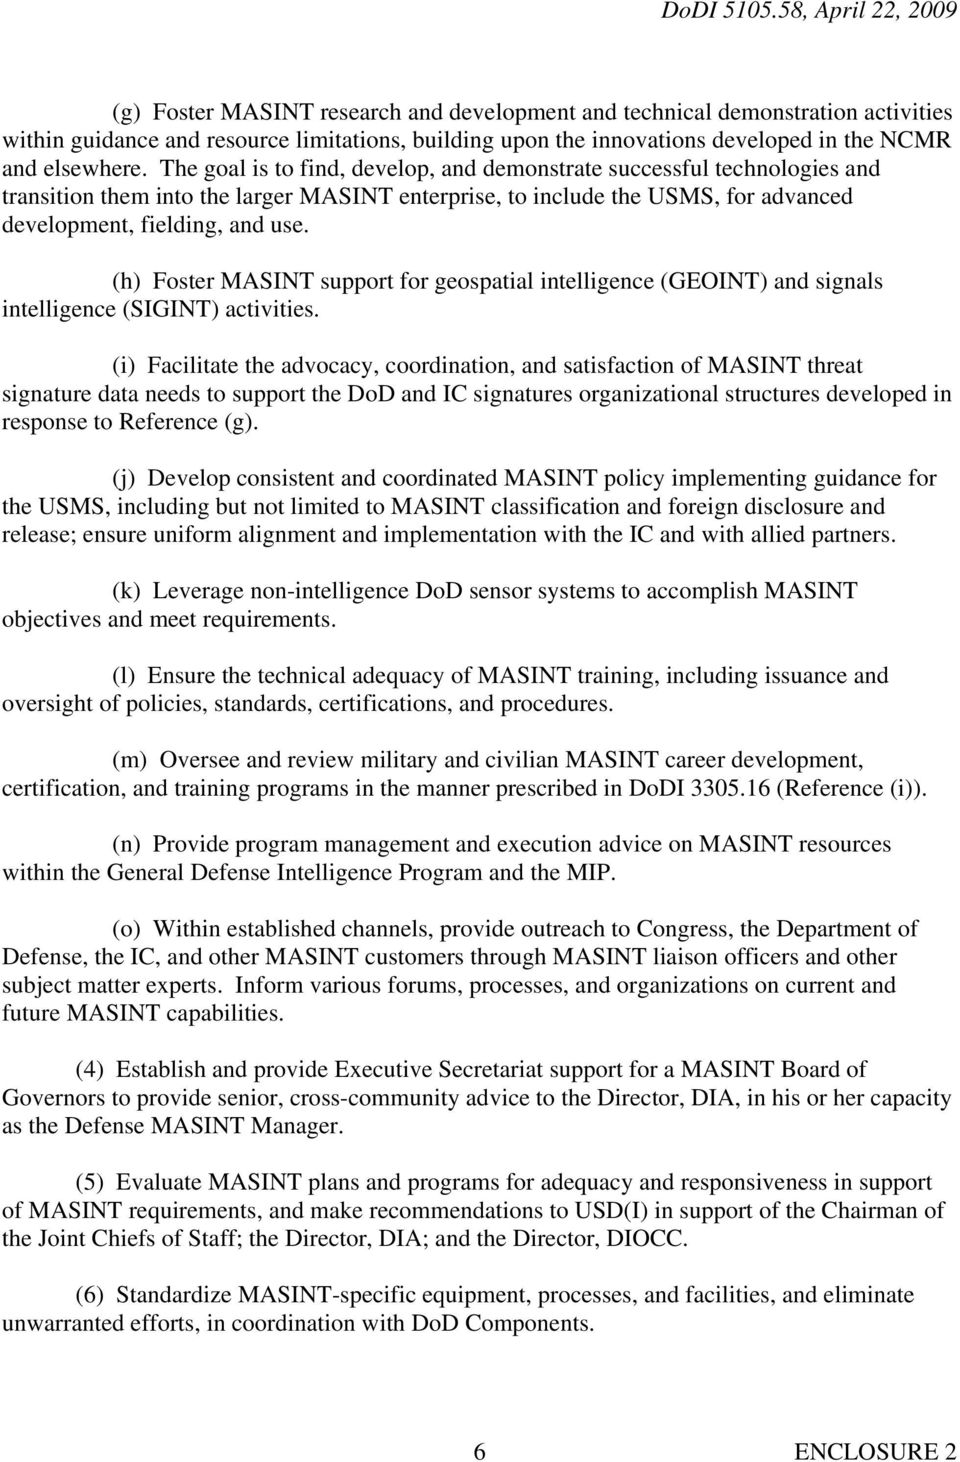 (h) Foster MASINT support for geospatial intelligence (GEOINT) and signals intelligence (SIGINT) activities.